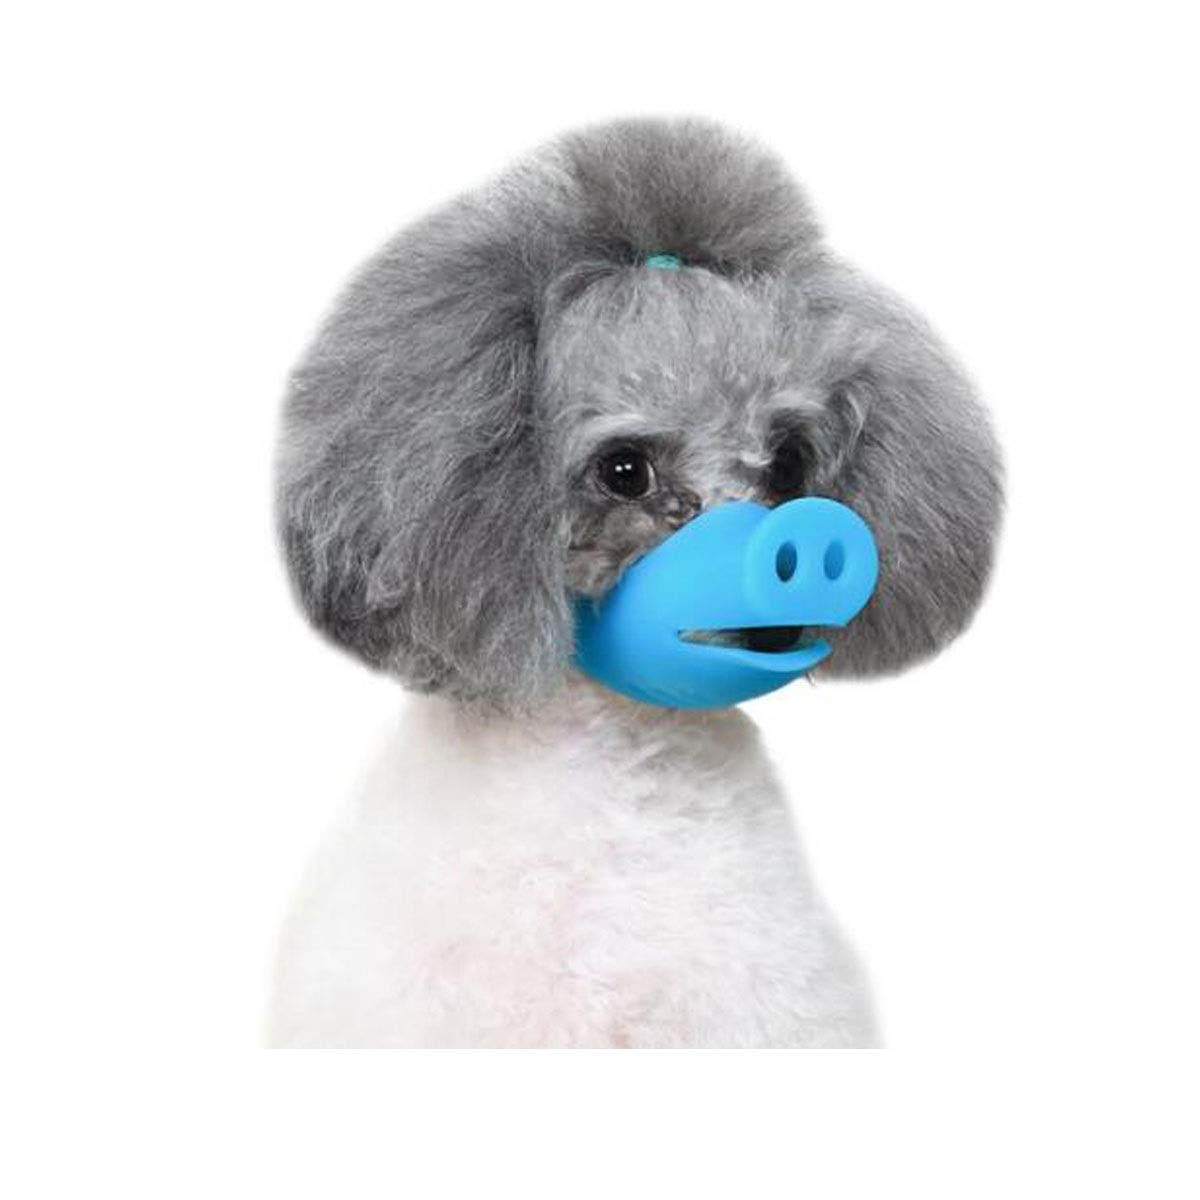 HENGTONGTONGXUN Dog Mouth Cover Anti-Breathing Disorder Eating Food can Adjust pet Dog Mouth cage Small/Large (Color : Blue, Size : S)